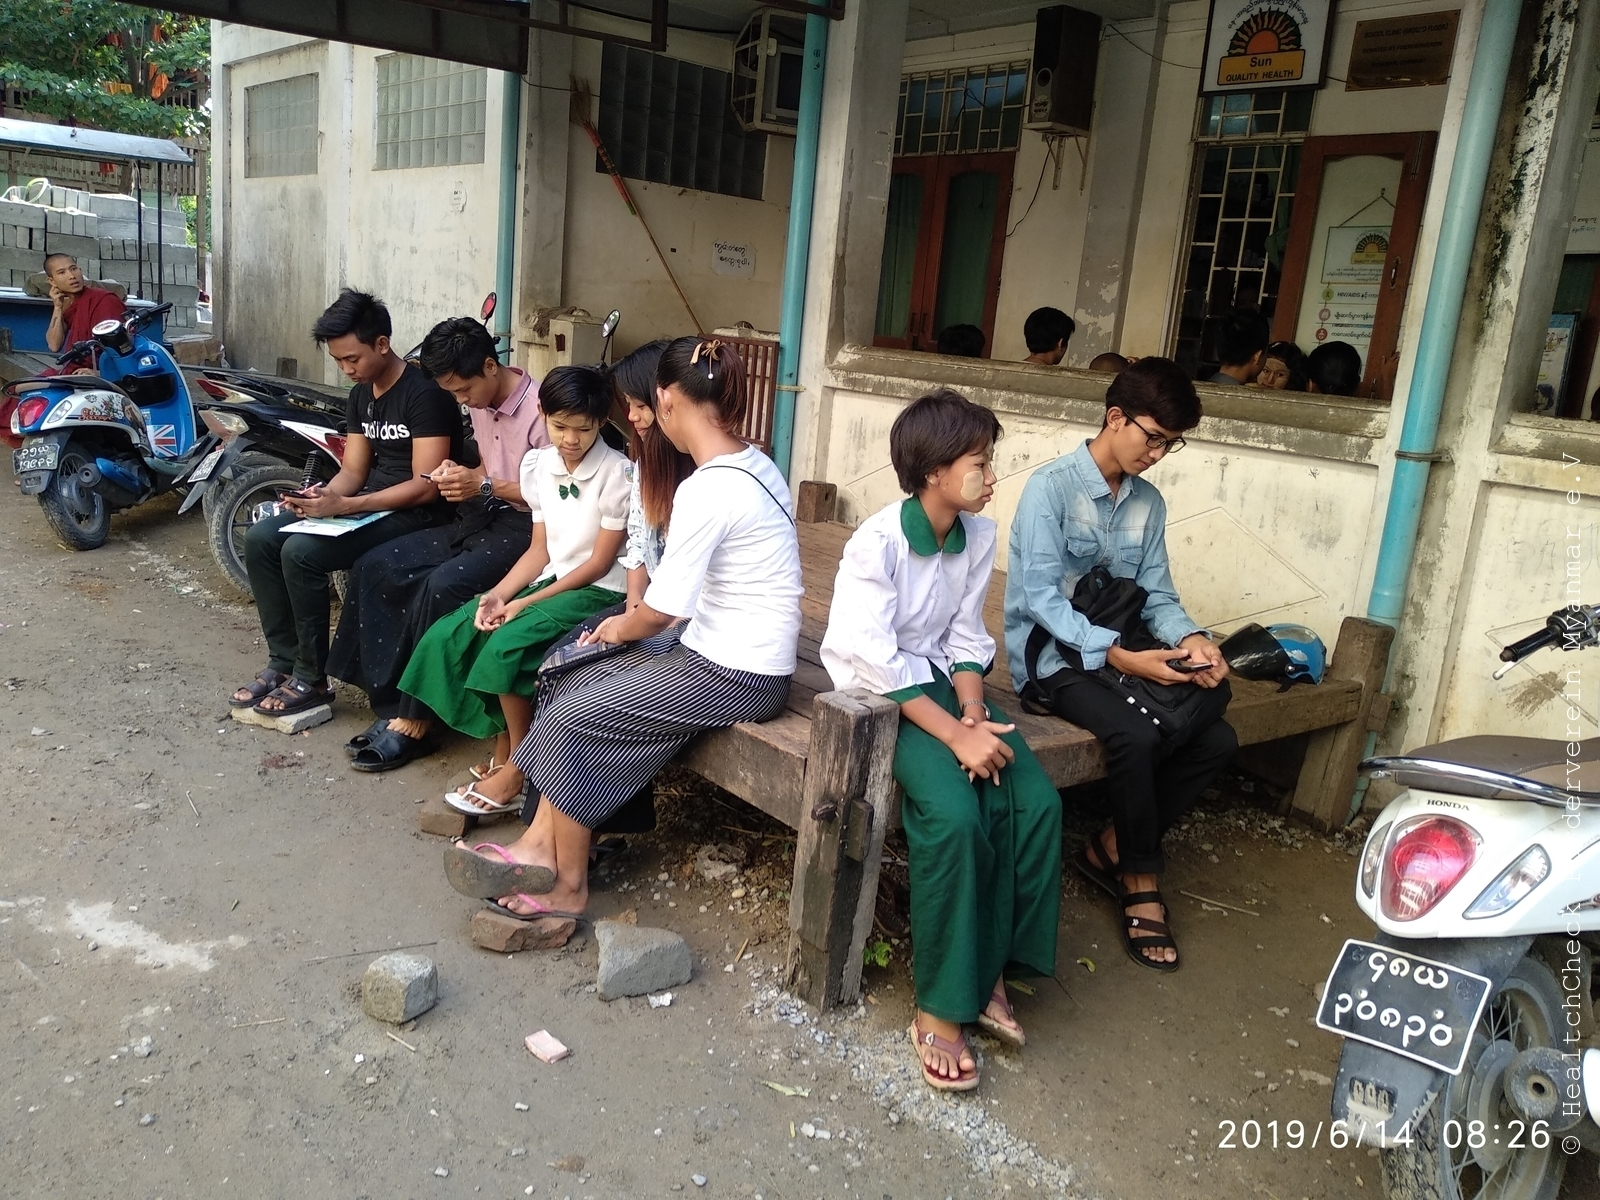 Wz Web HealthCheckMandalay 1